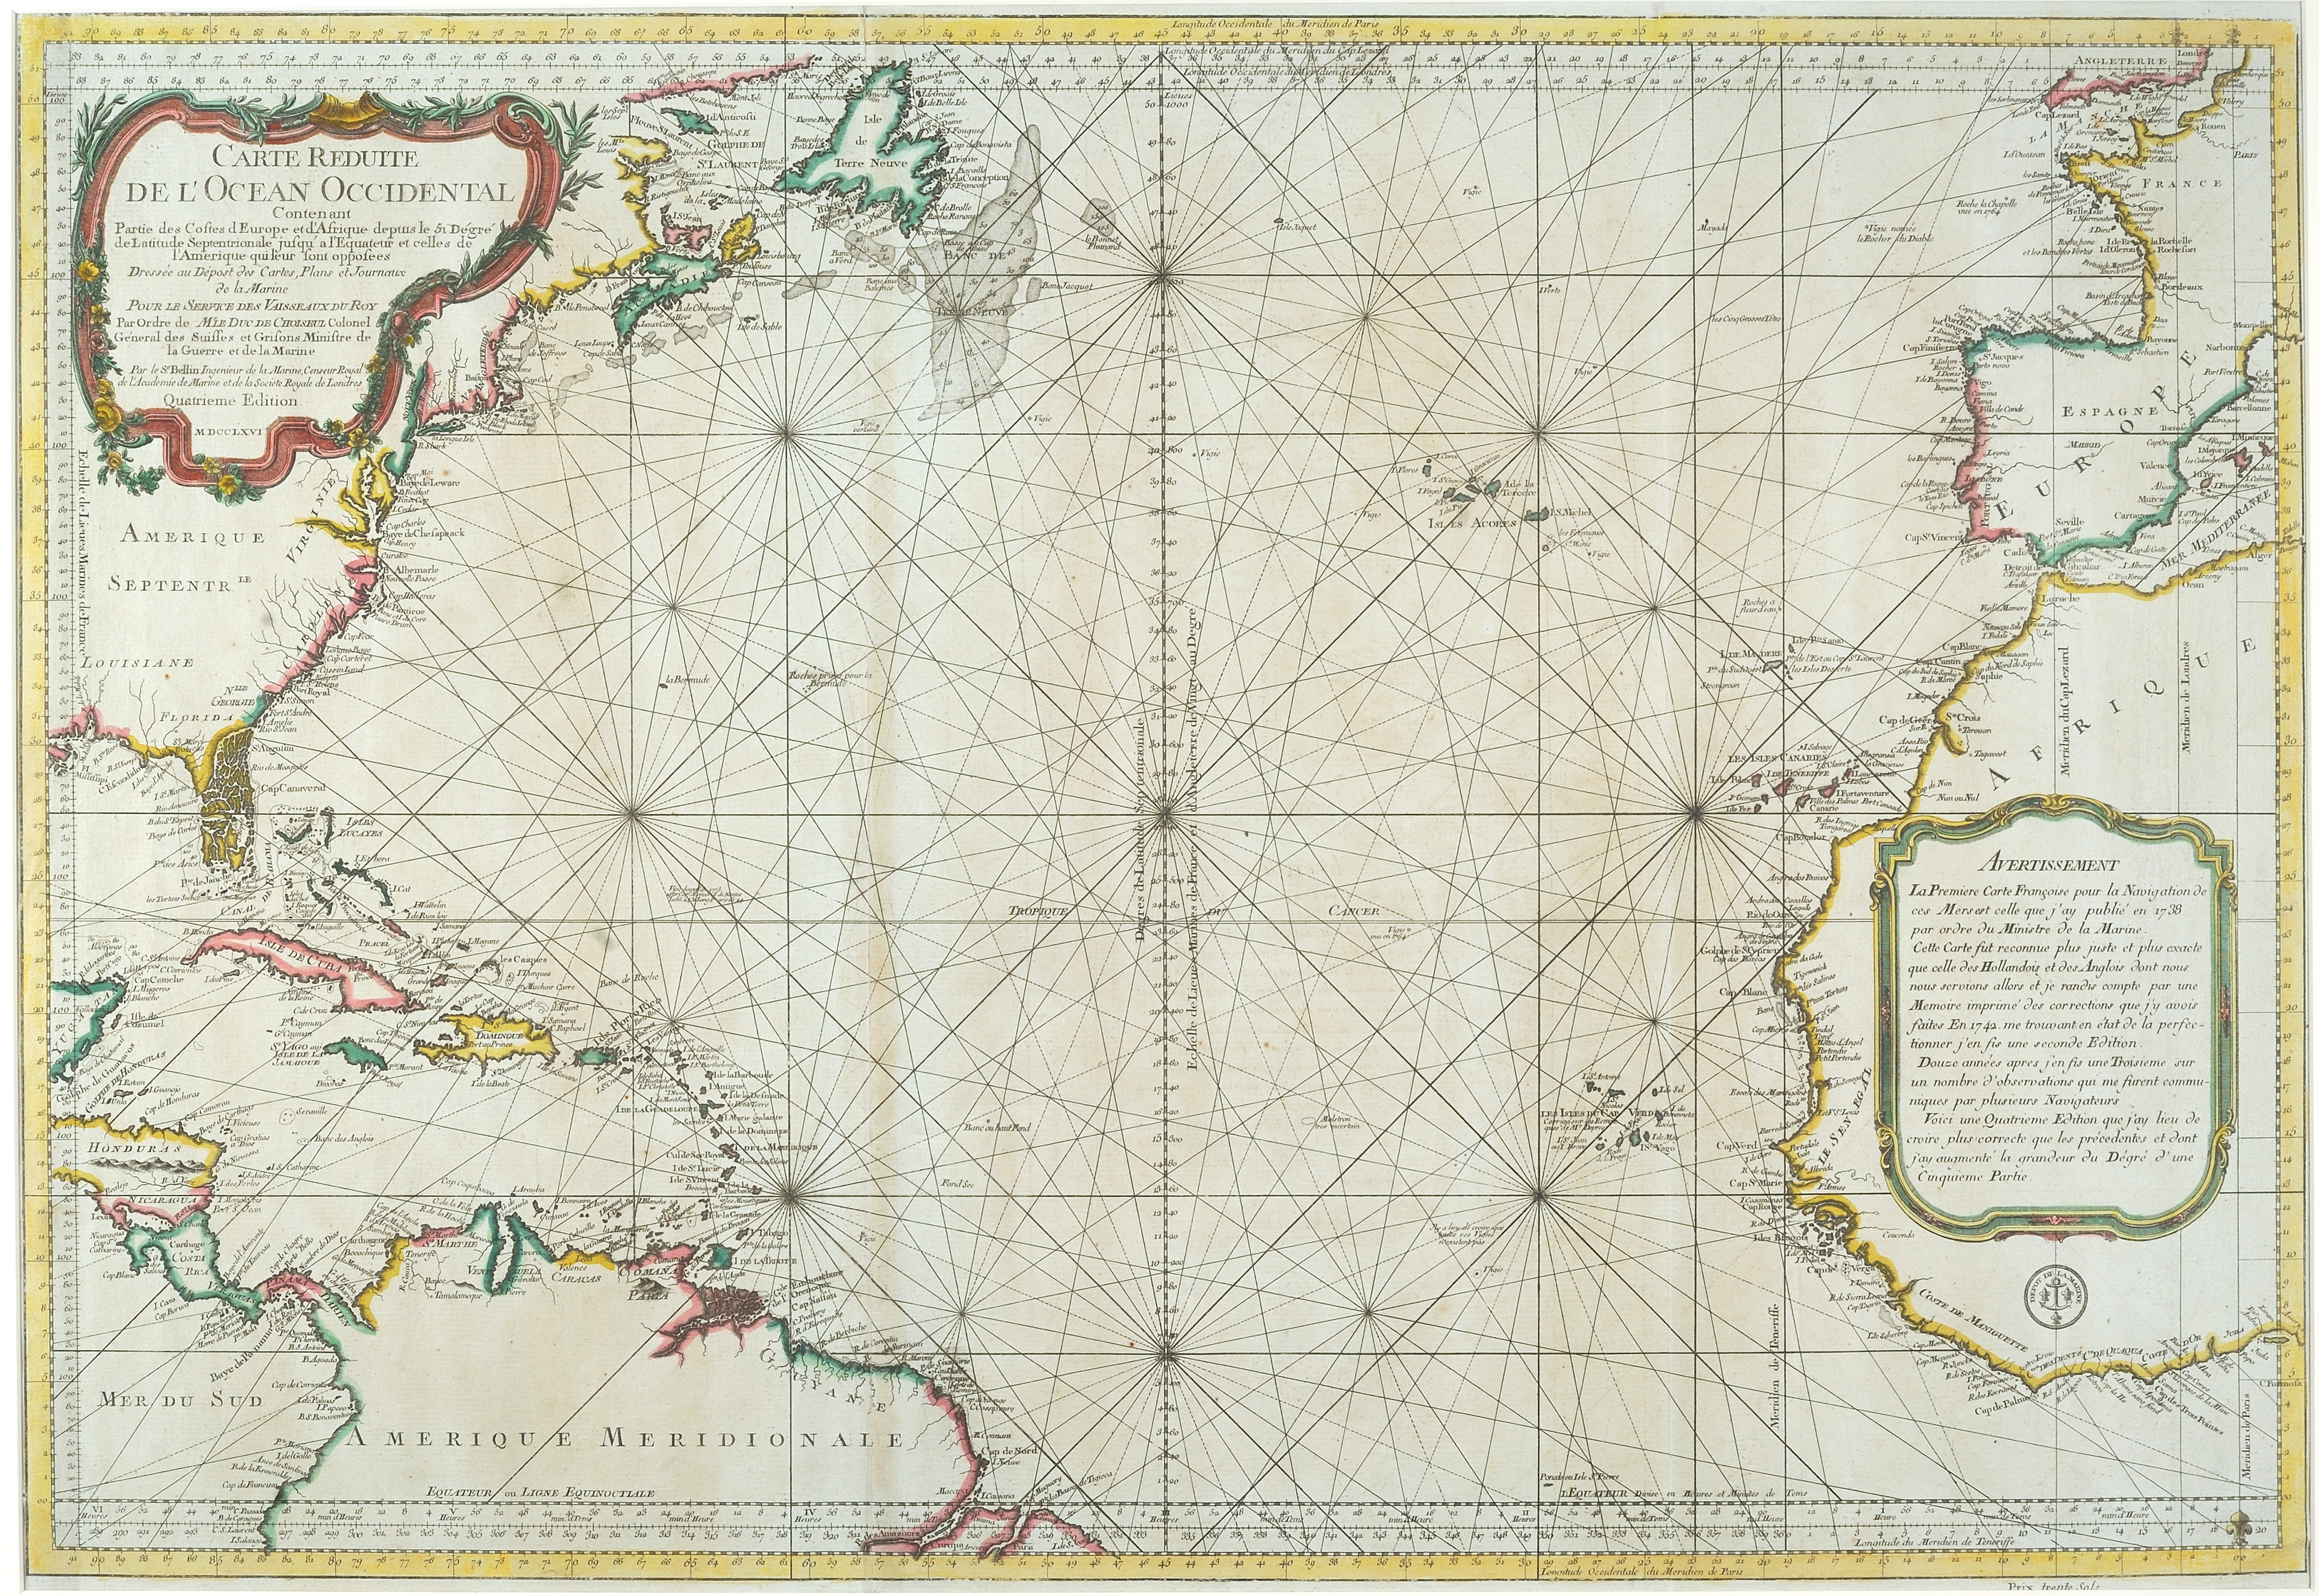 Carte Réduite de l'Ocean Occidental, Jacques-Nicholas Bellin,  Paris: Dépôt de la Marine, 1766